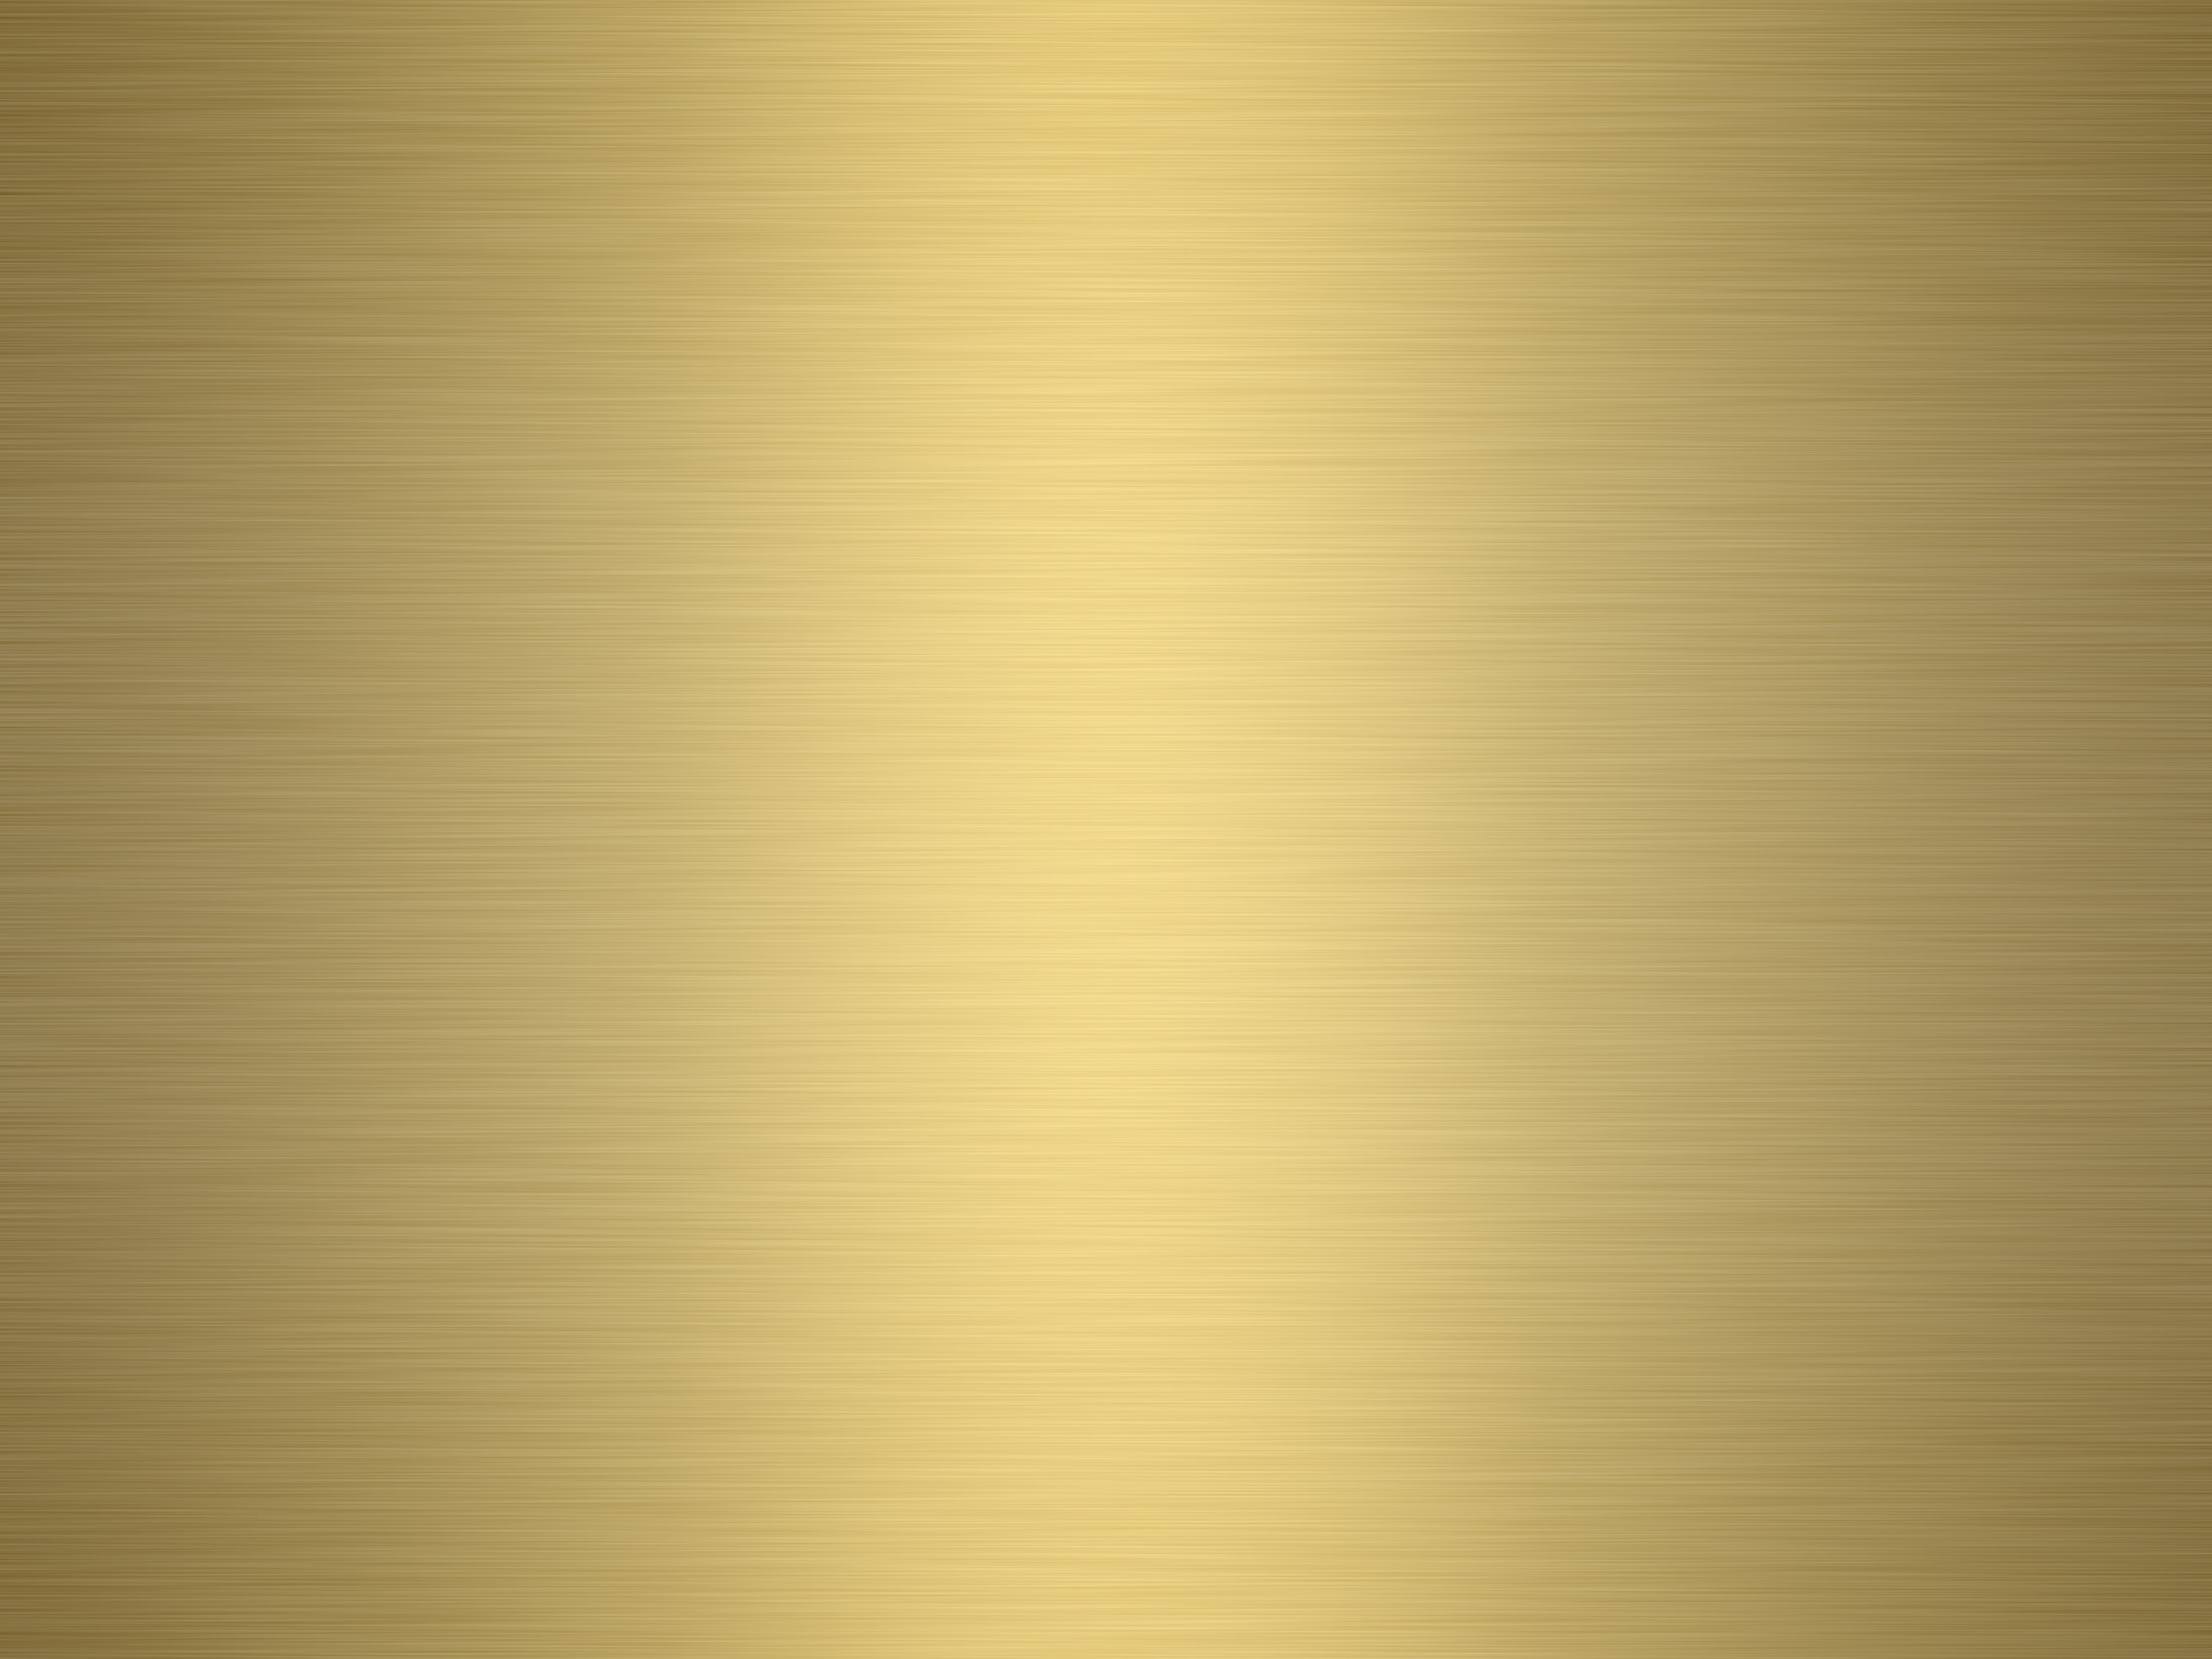 brushed gold metal background texture  wwwmyfreetextures